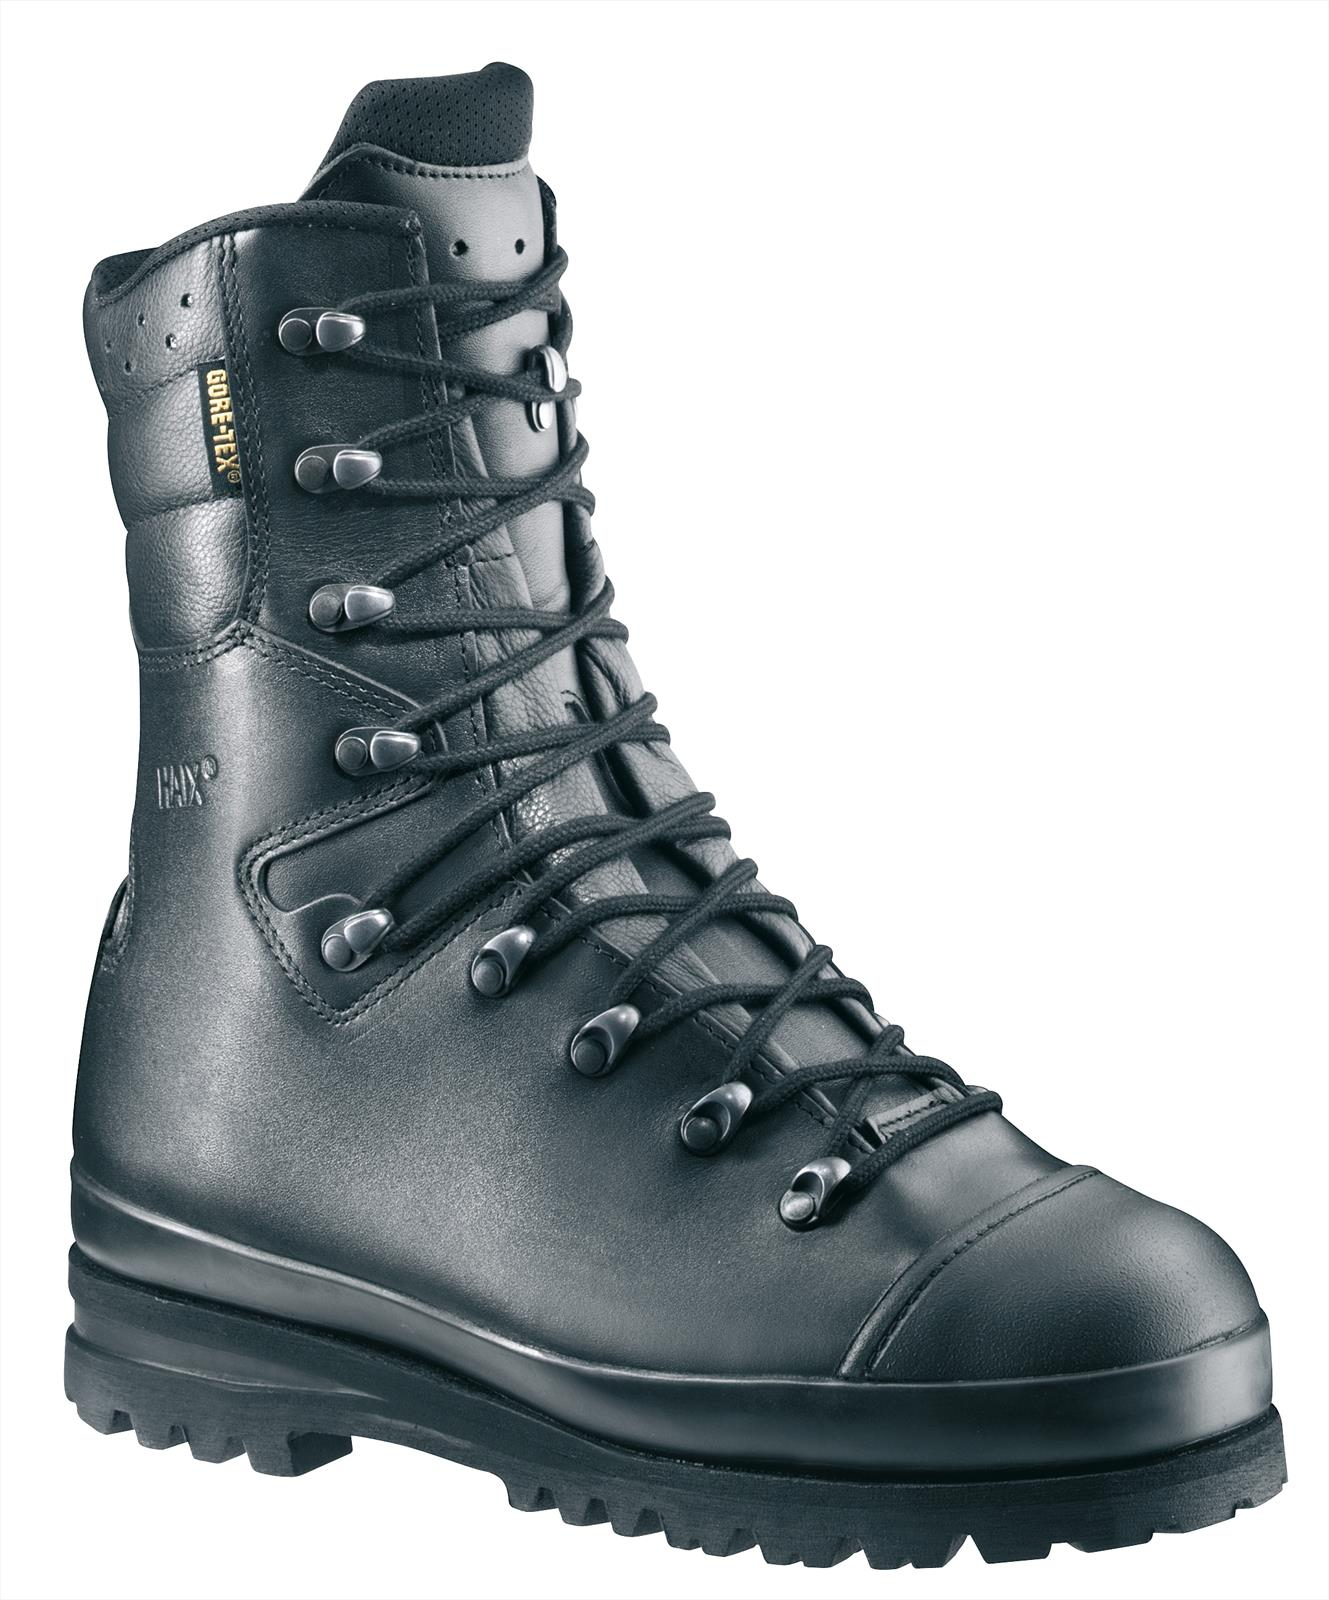 Haix Tibet Forest Chainsaw Safety Boots Timberland Boots